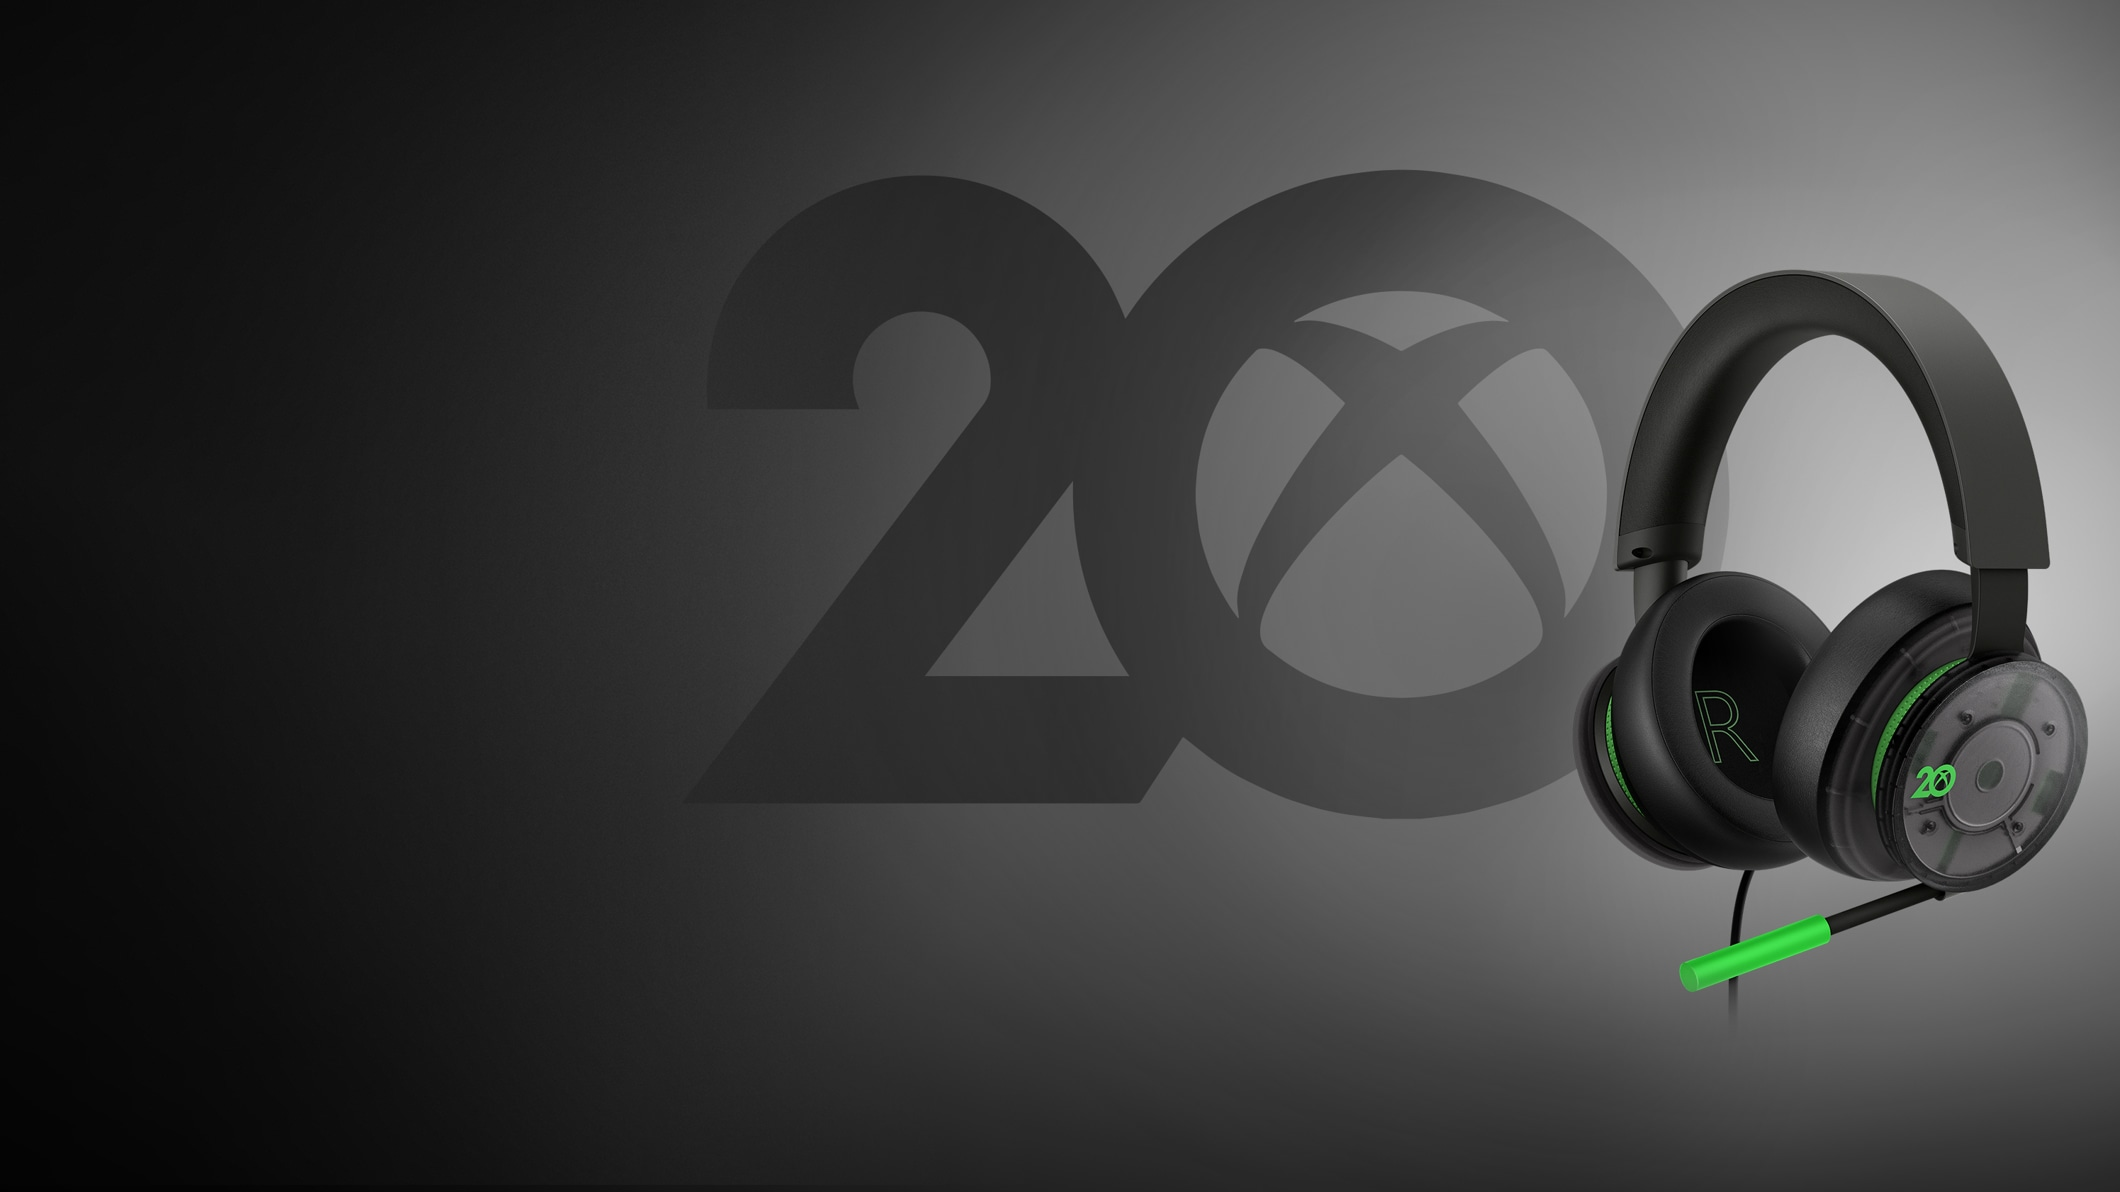 Xbox-stereoheadset – 20th Anniversary Special Edition op een groene achtergrond met datums